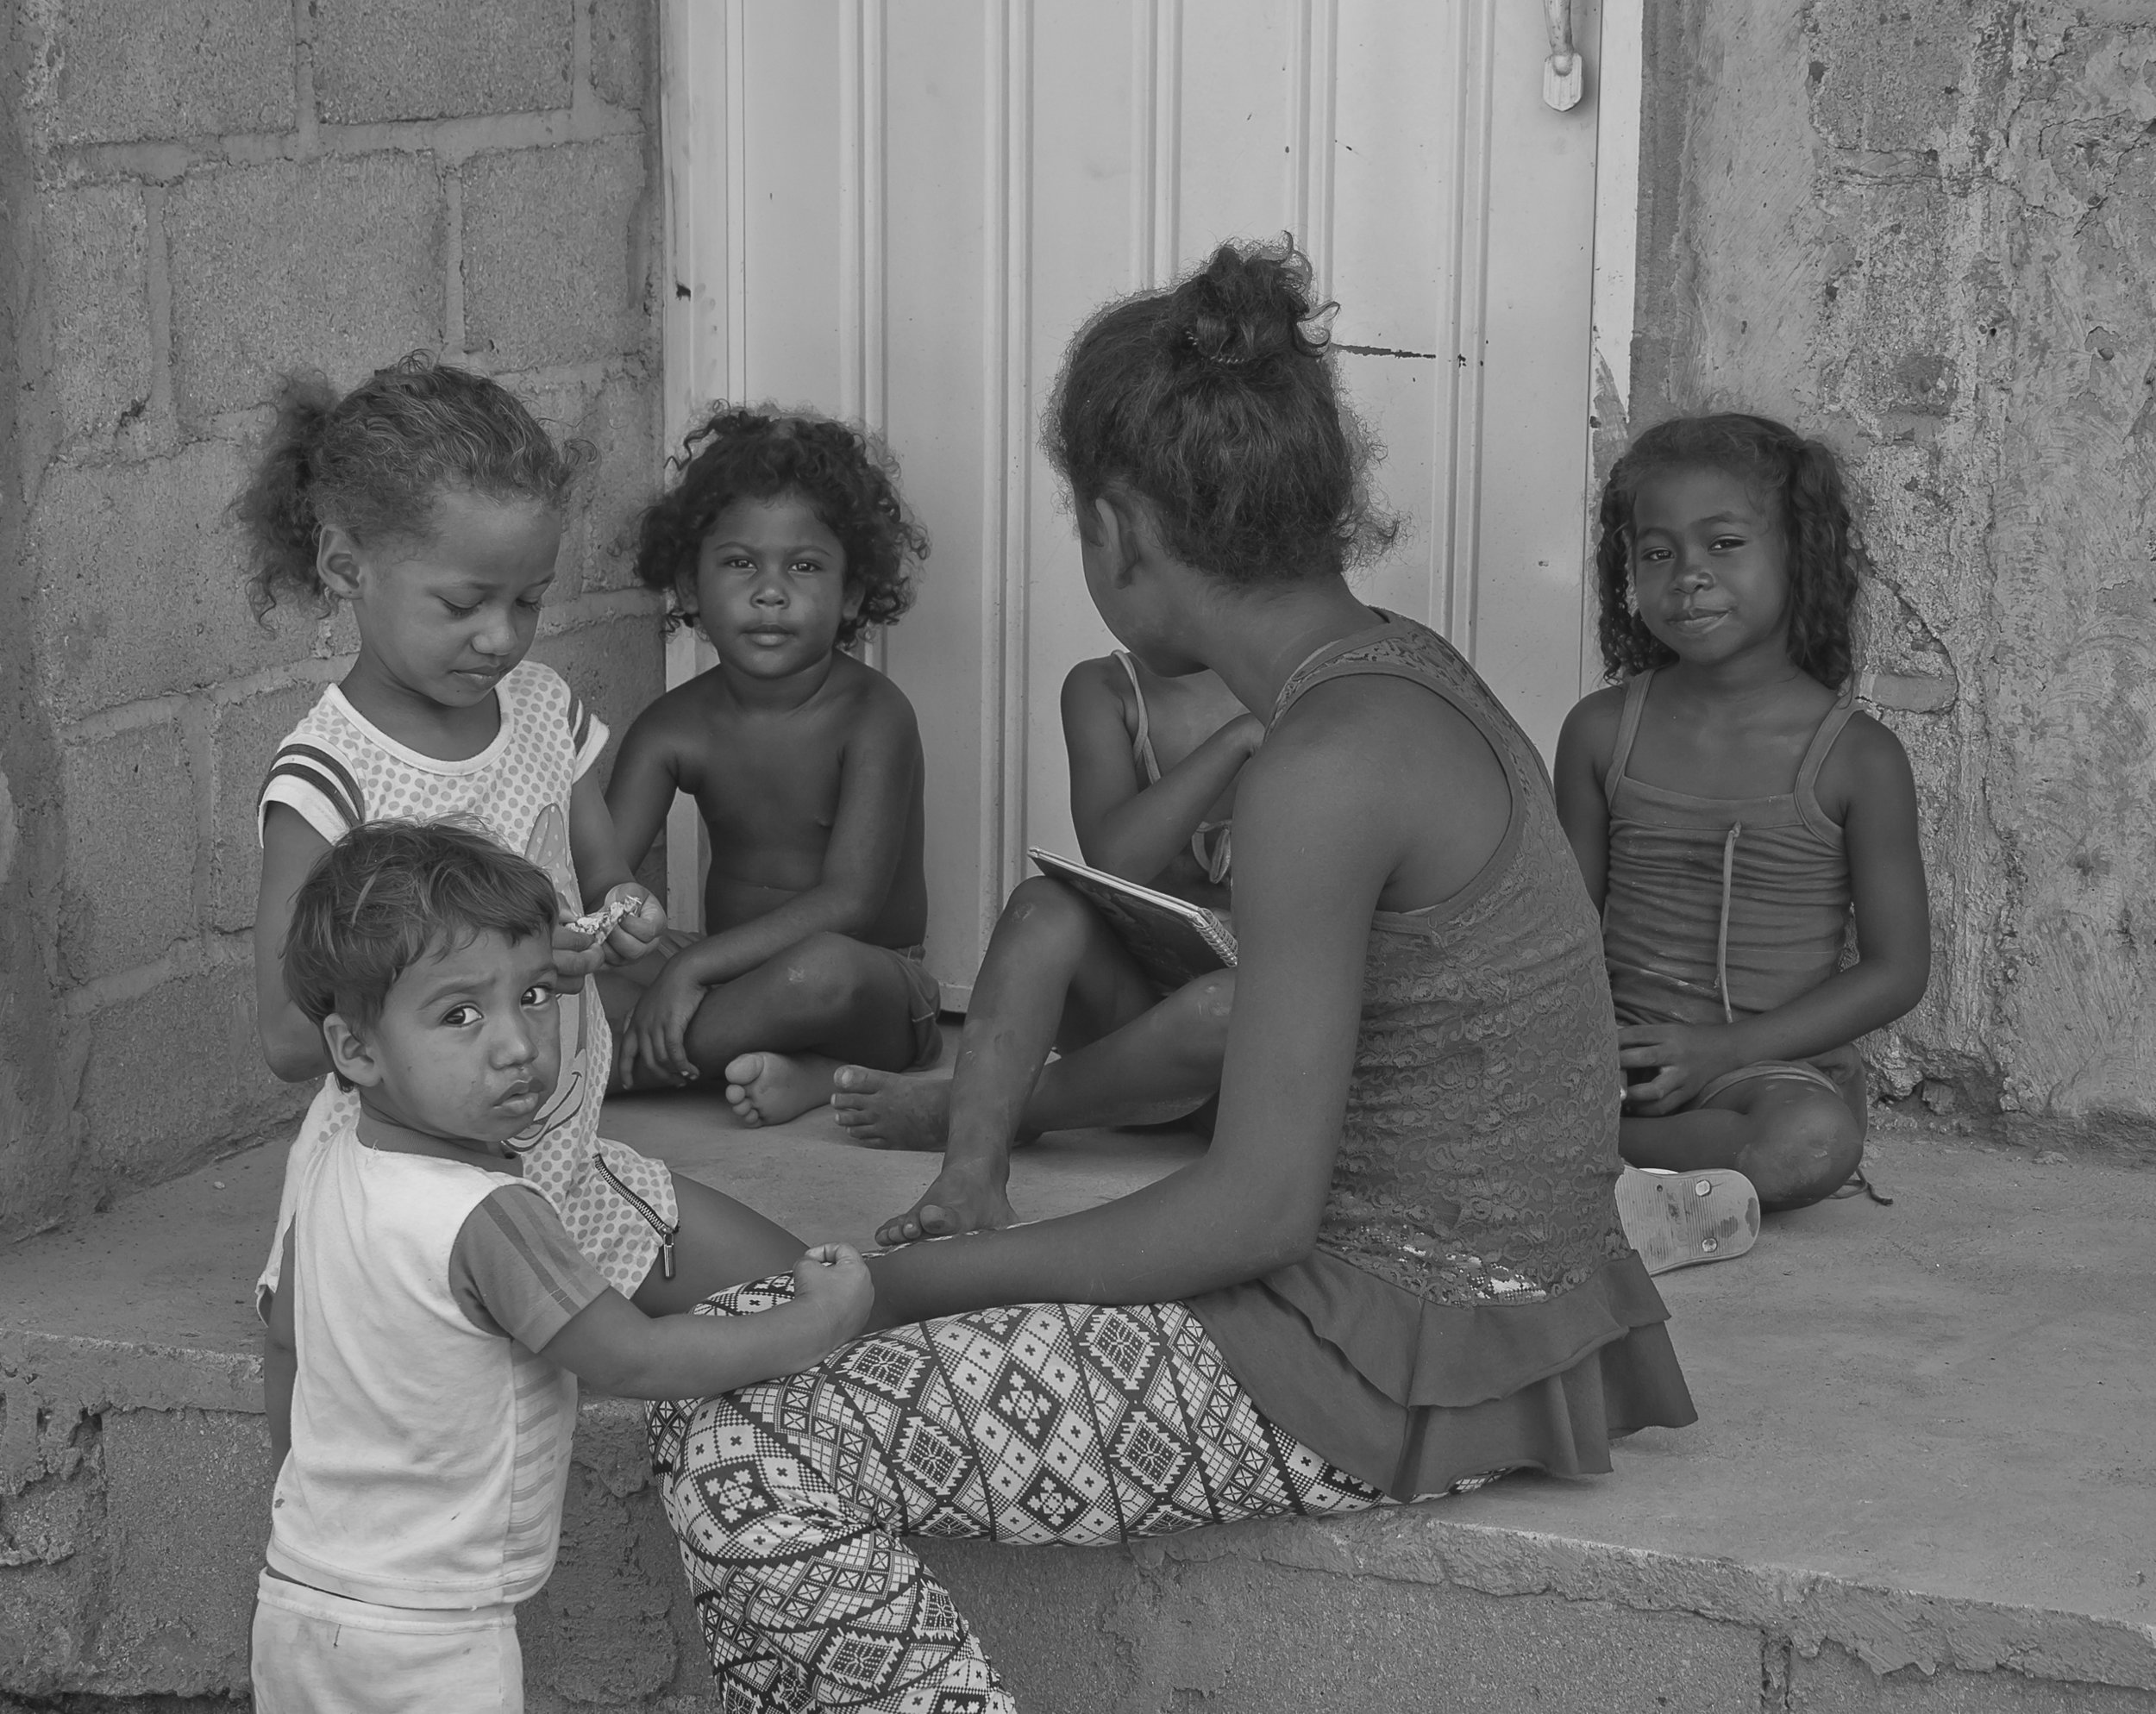 This is how good actions by young people promote peace by helping children to study, and to use their time doing meaningful activities to the community. They are even sometimes giving advices and promoting good habits. Here a young girl takes care of the kids while their parents are working.